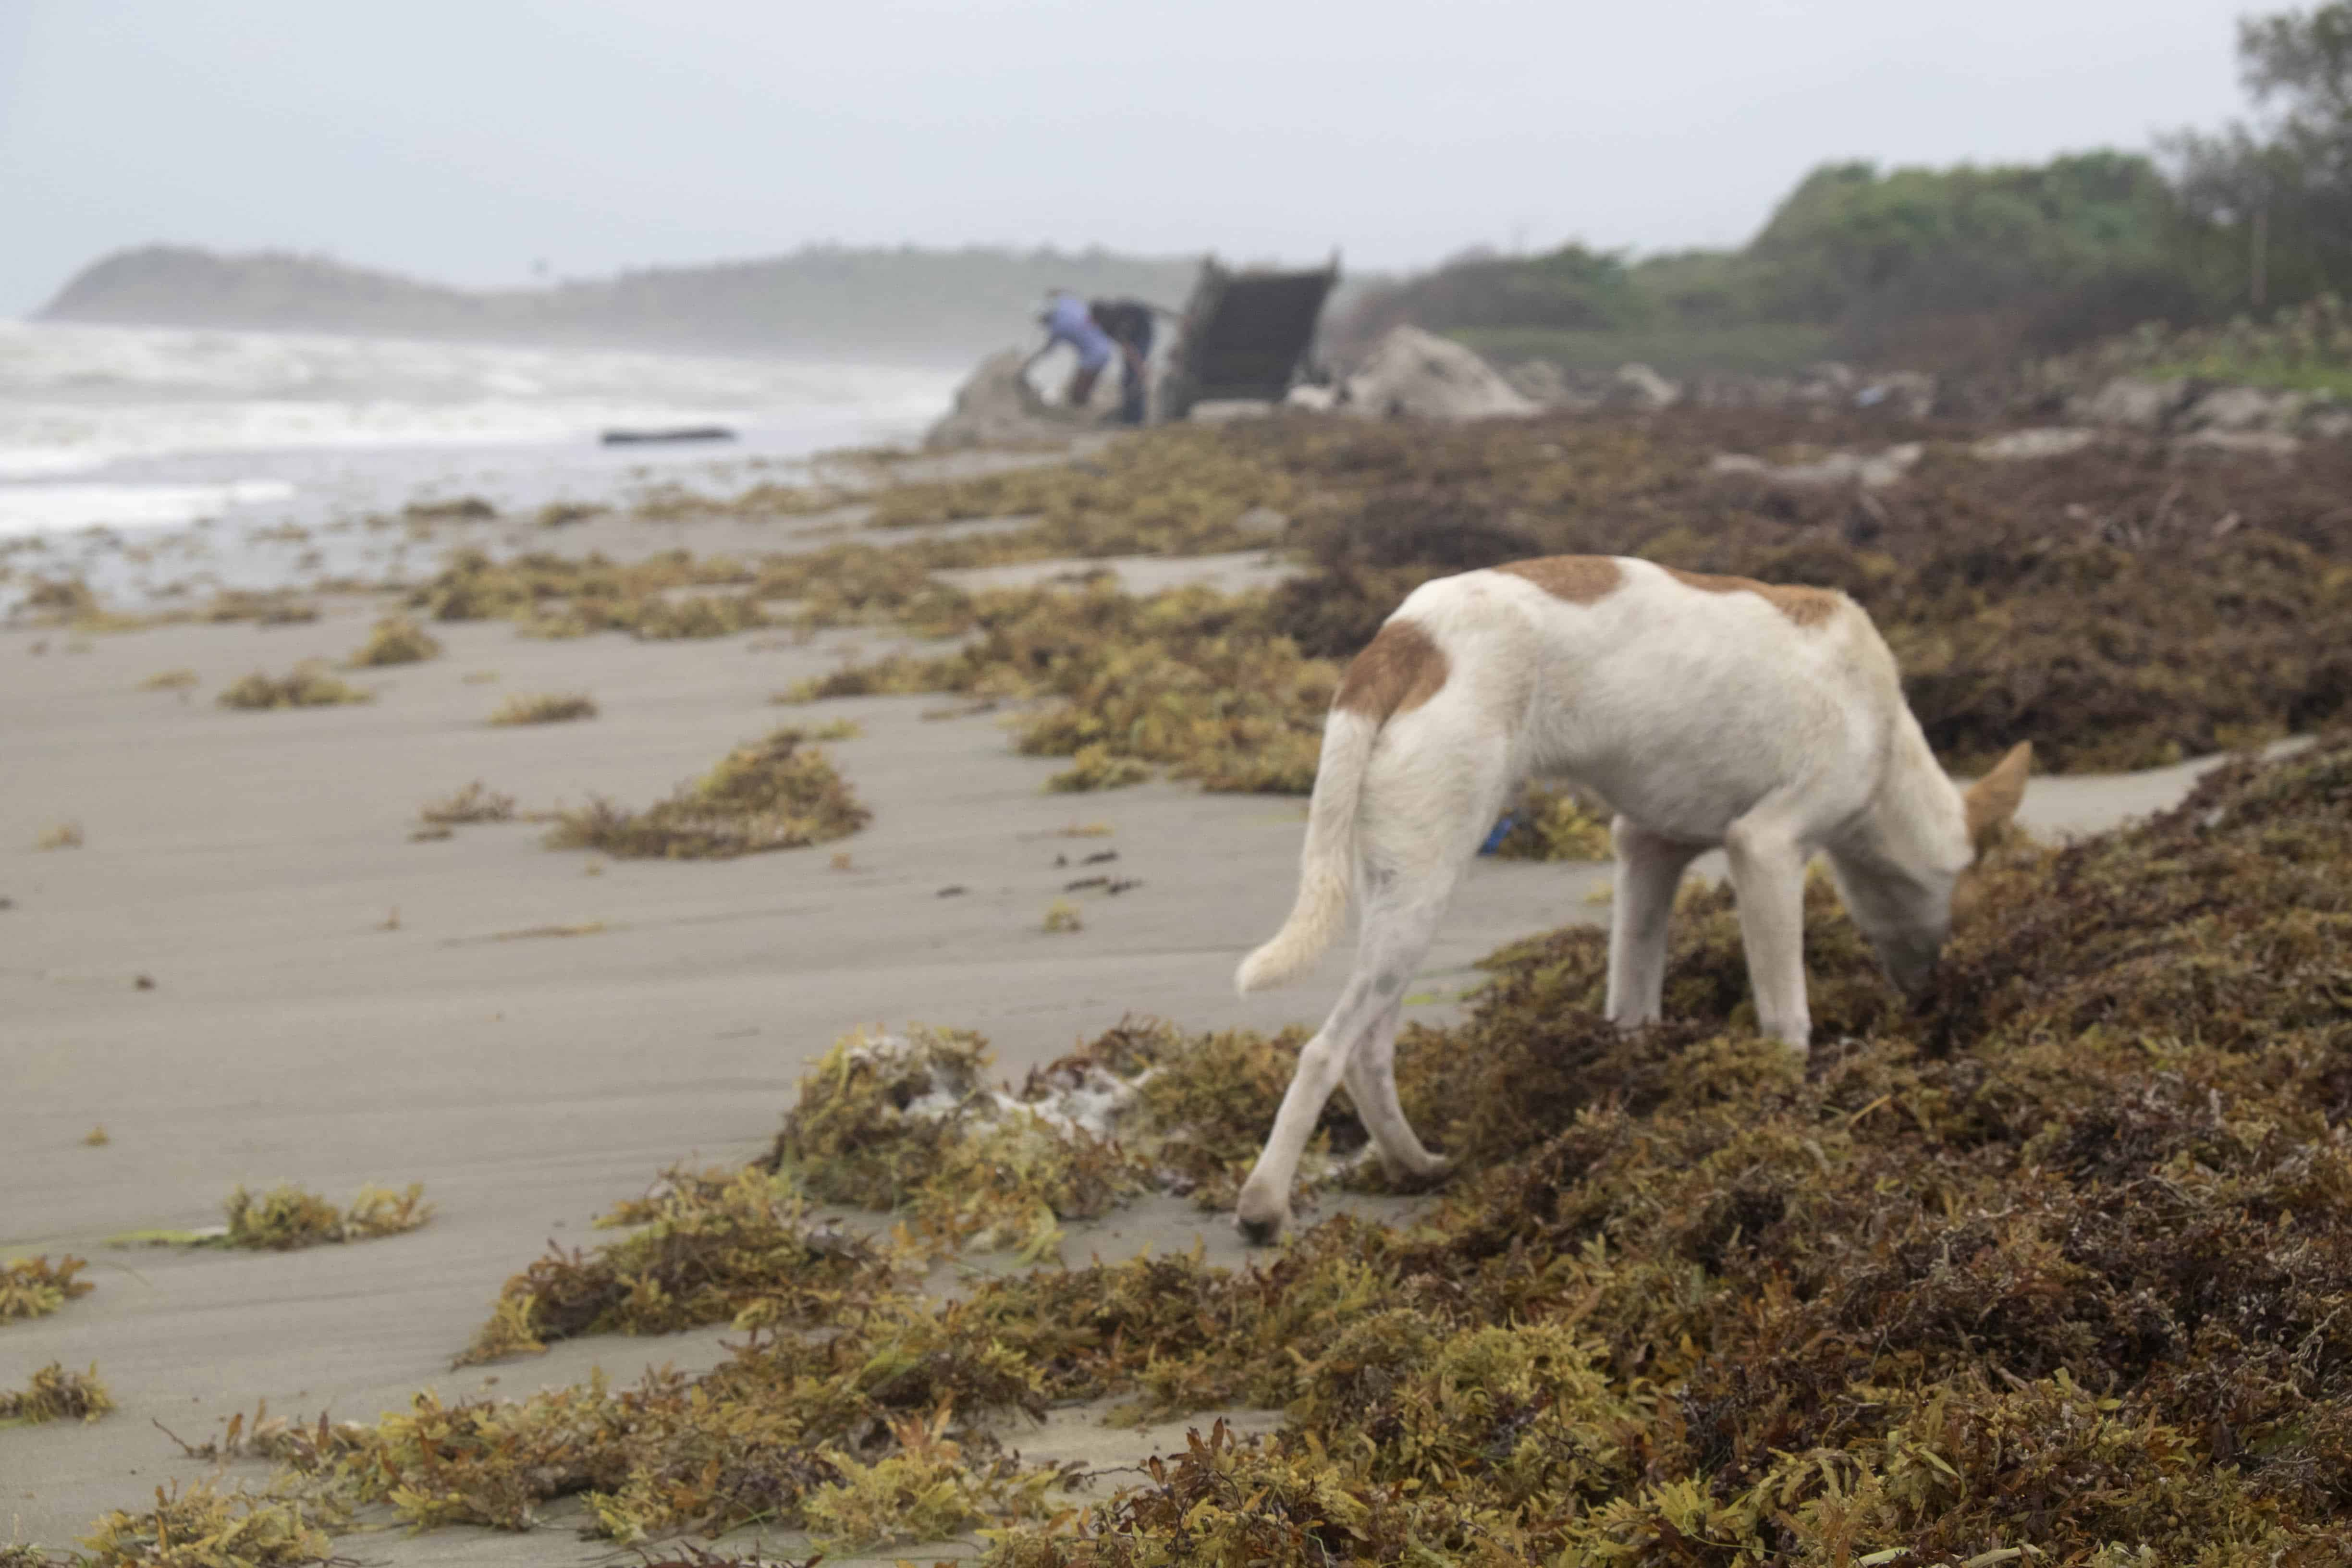 A dog searches for food in the same area that might contain packages of illicit drugs.